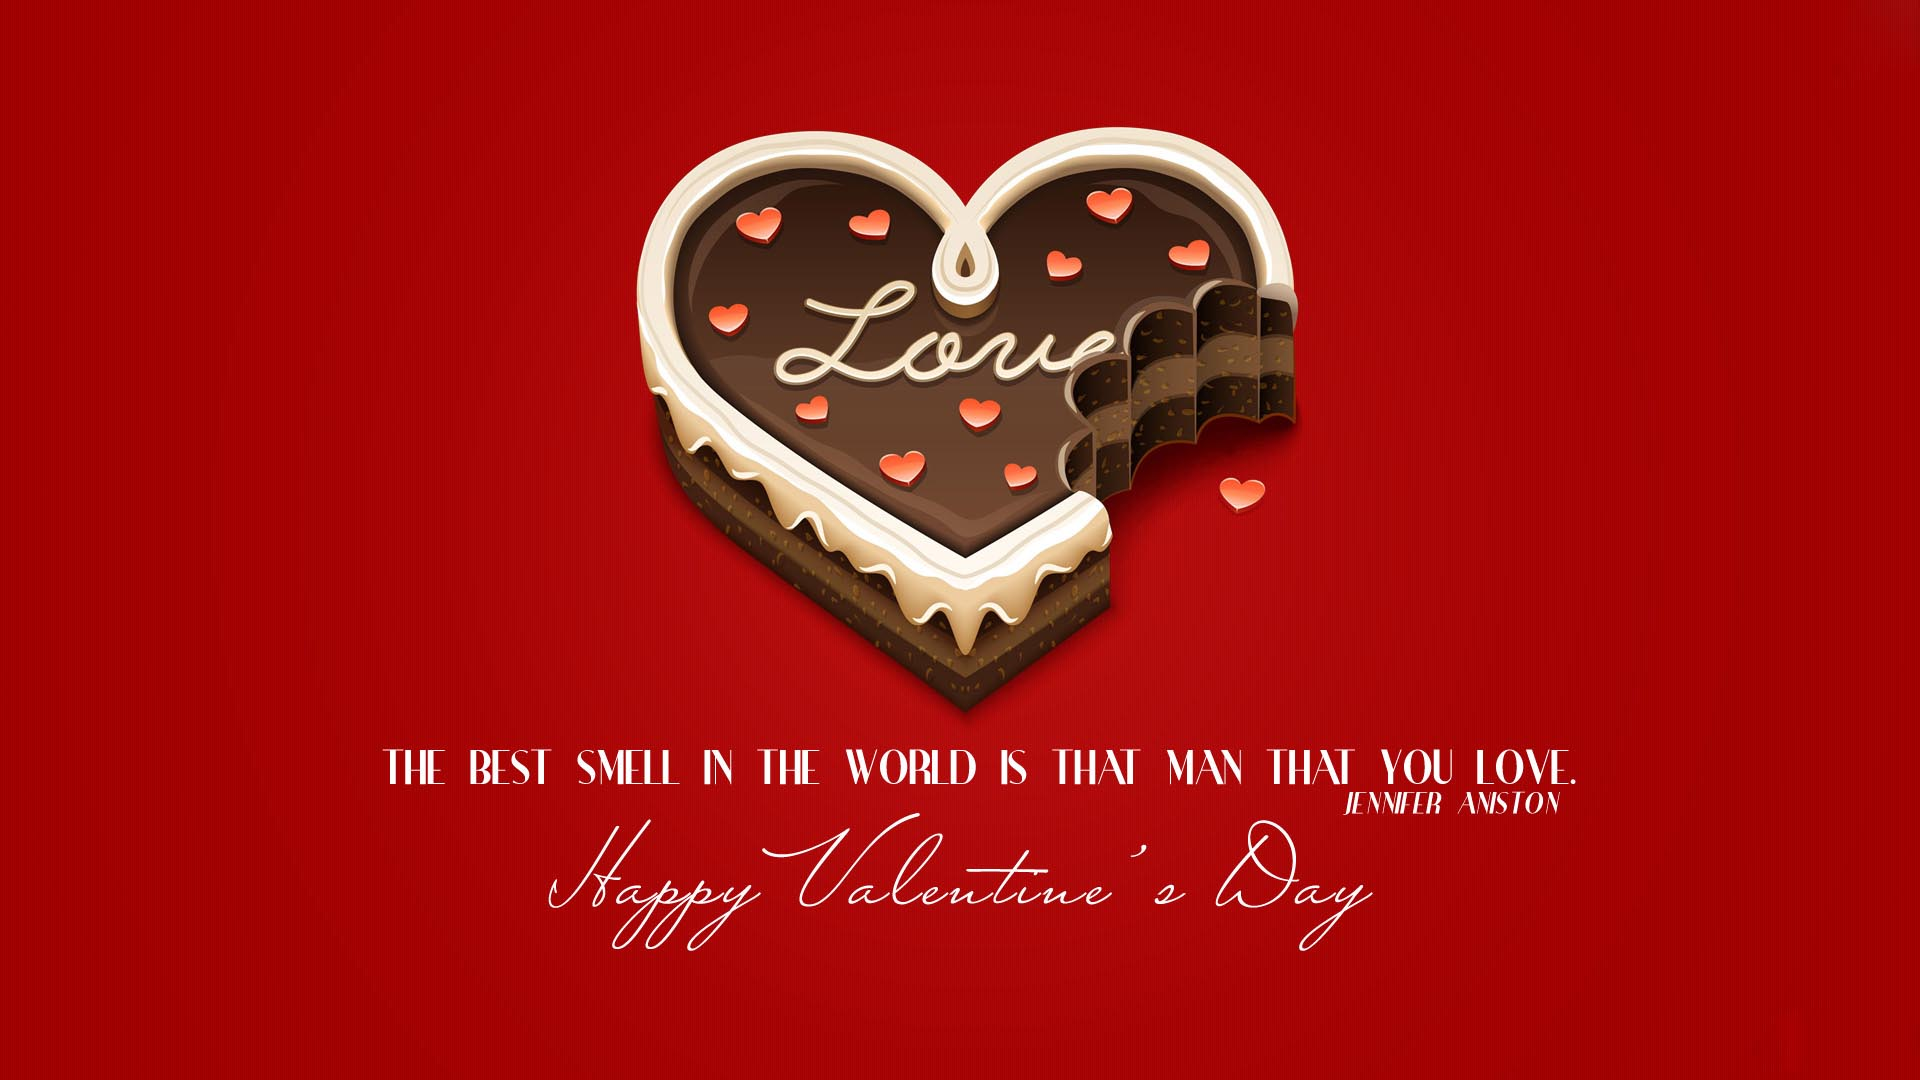 Happy Chocolate Day Valentines Day Wallpapers Hd Wallpapers 1920x1080